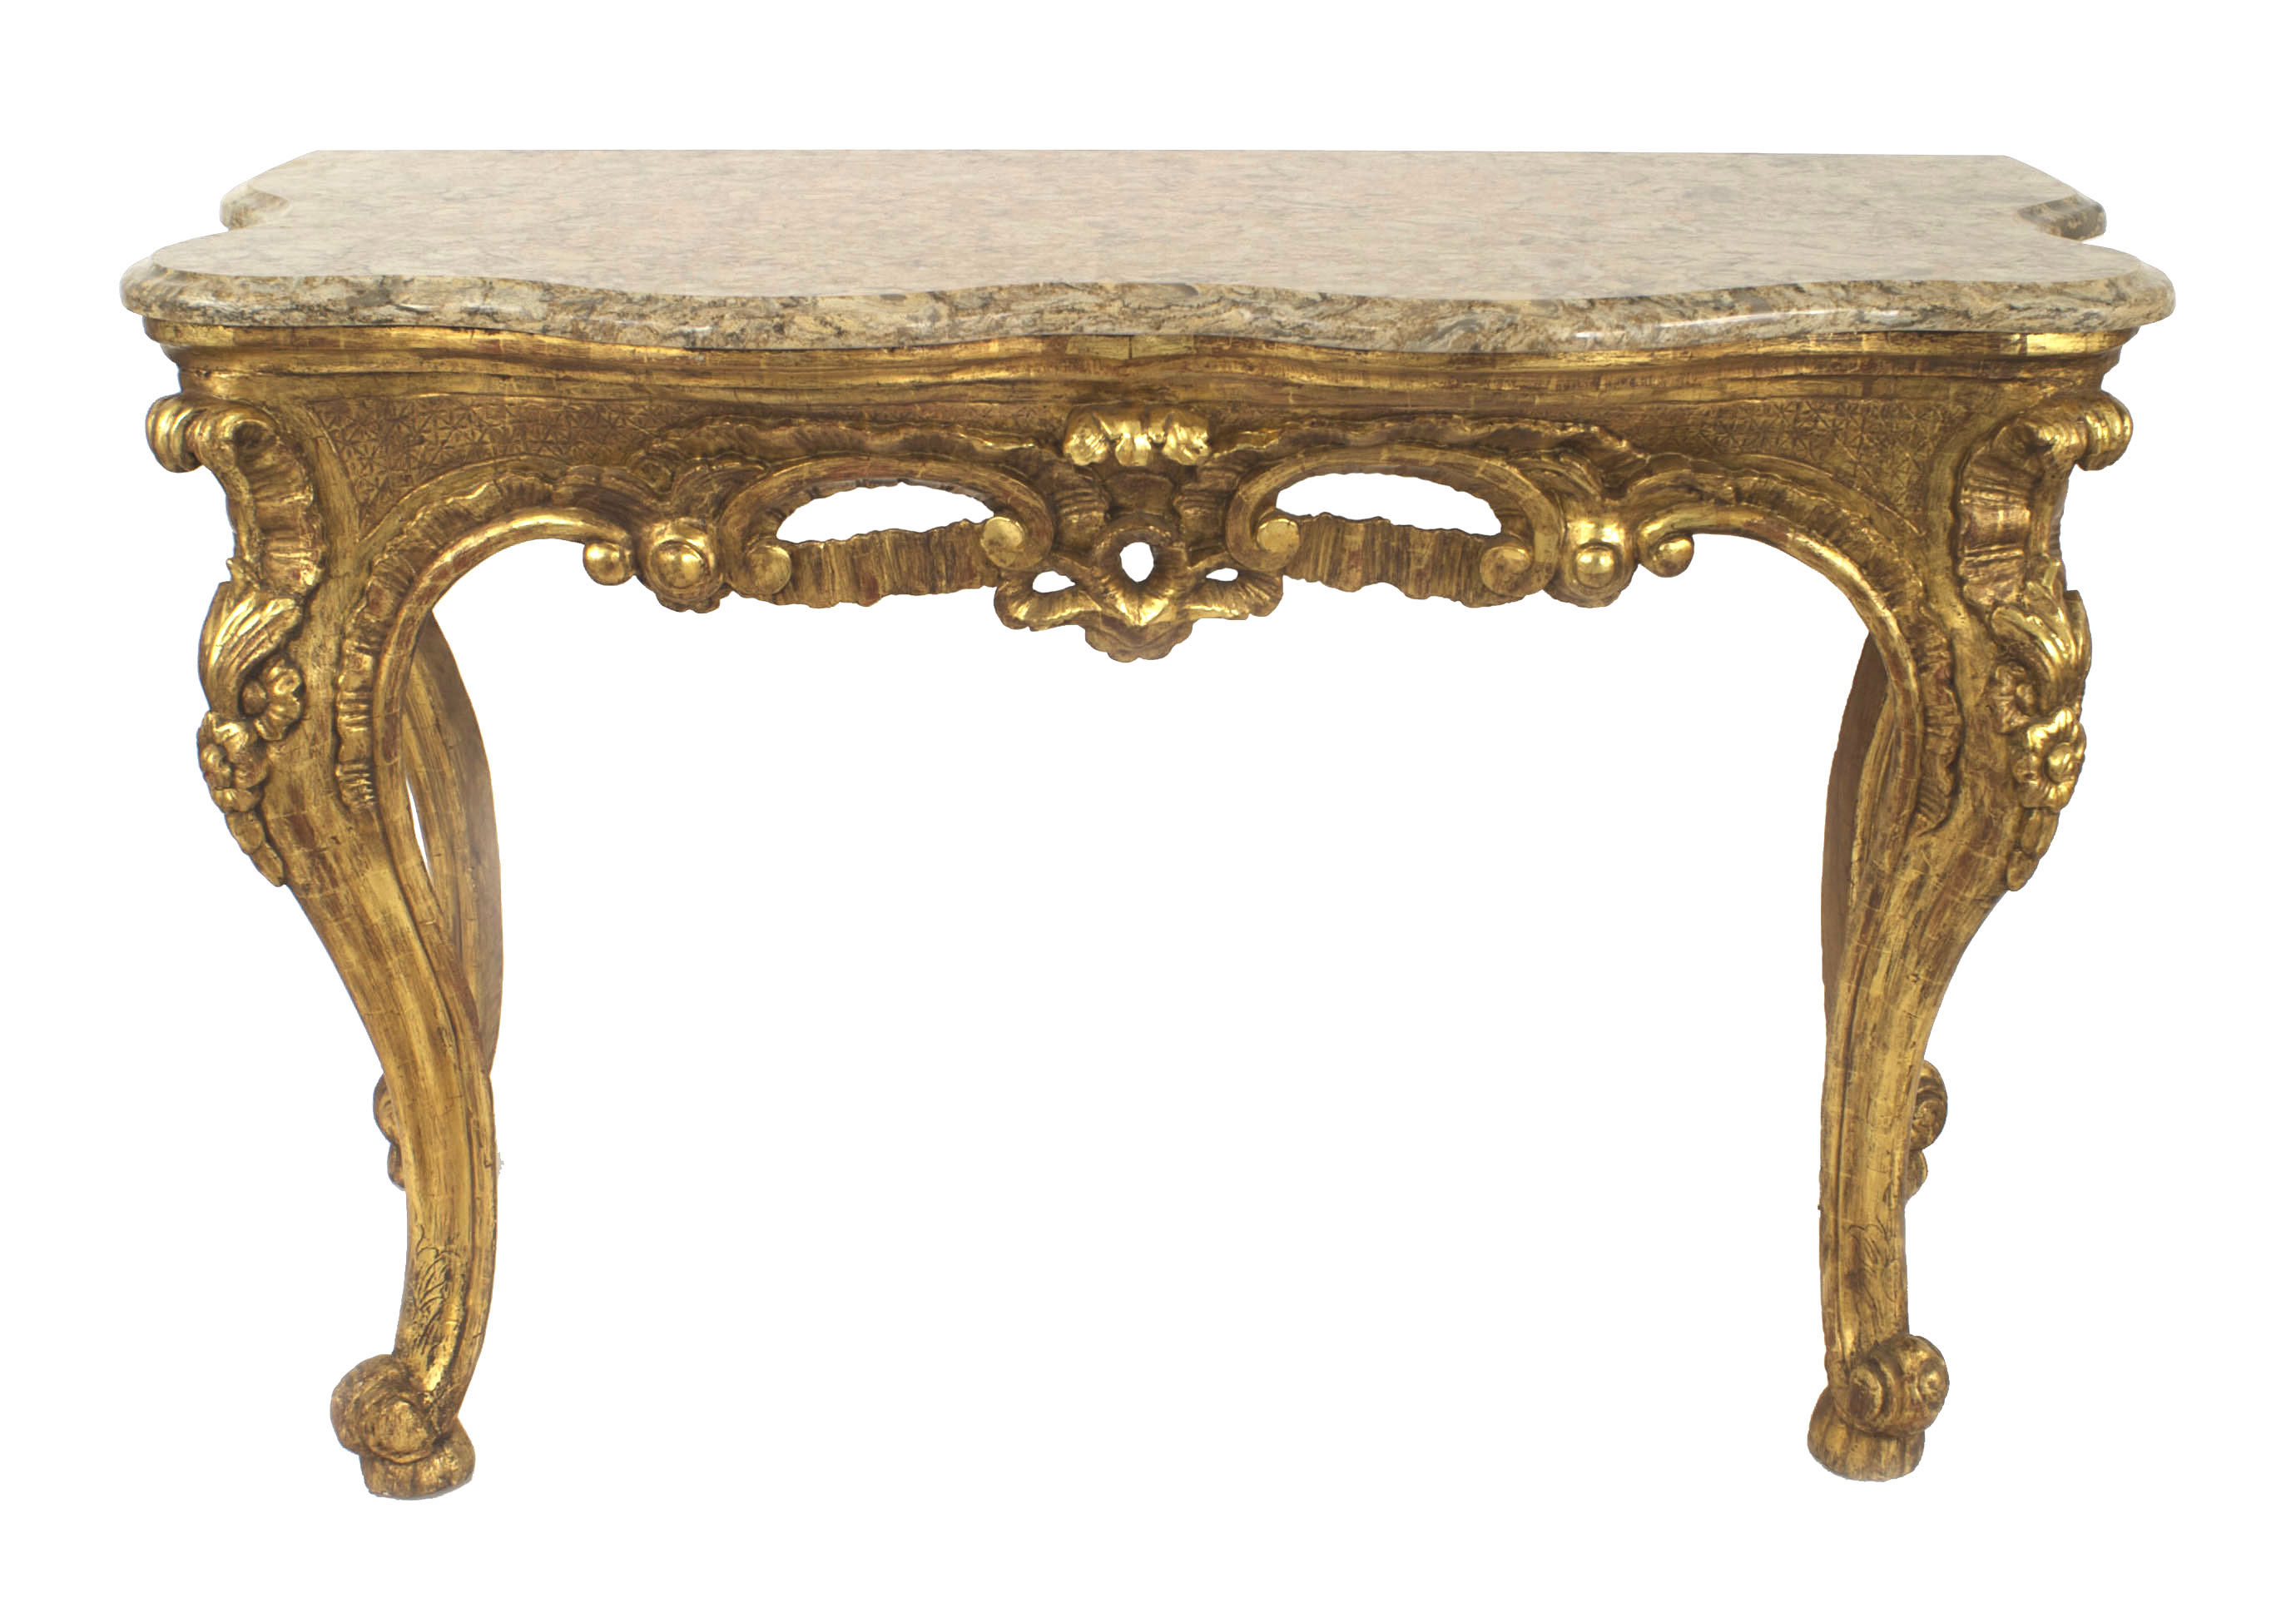 Venetian furniture